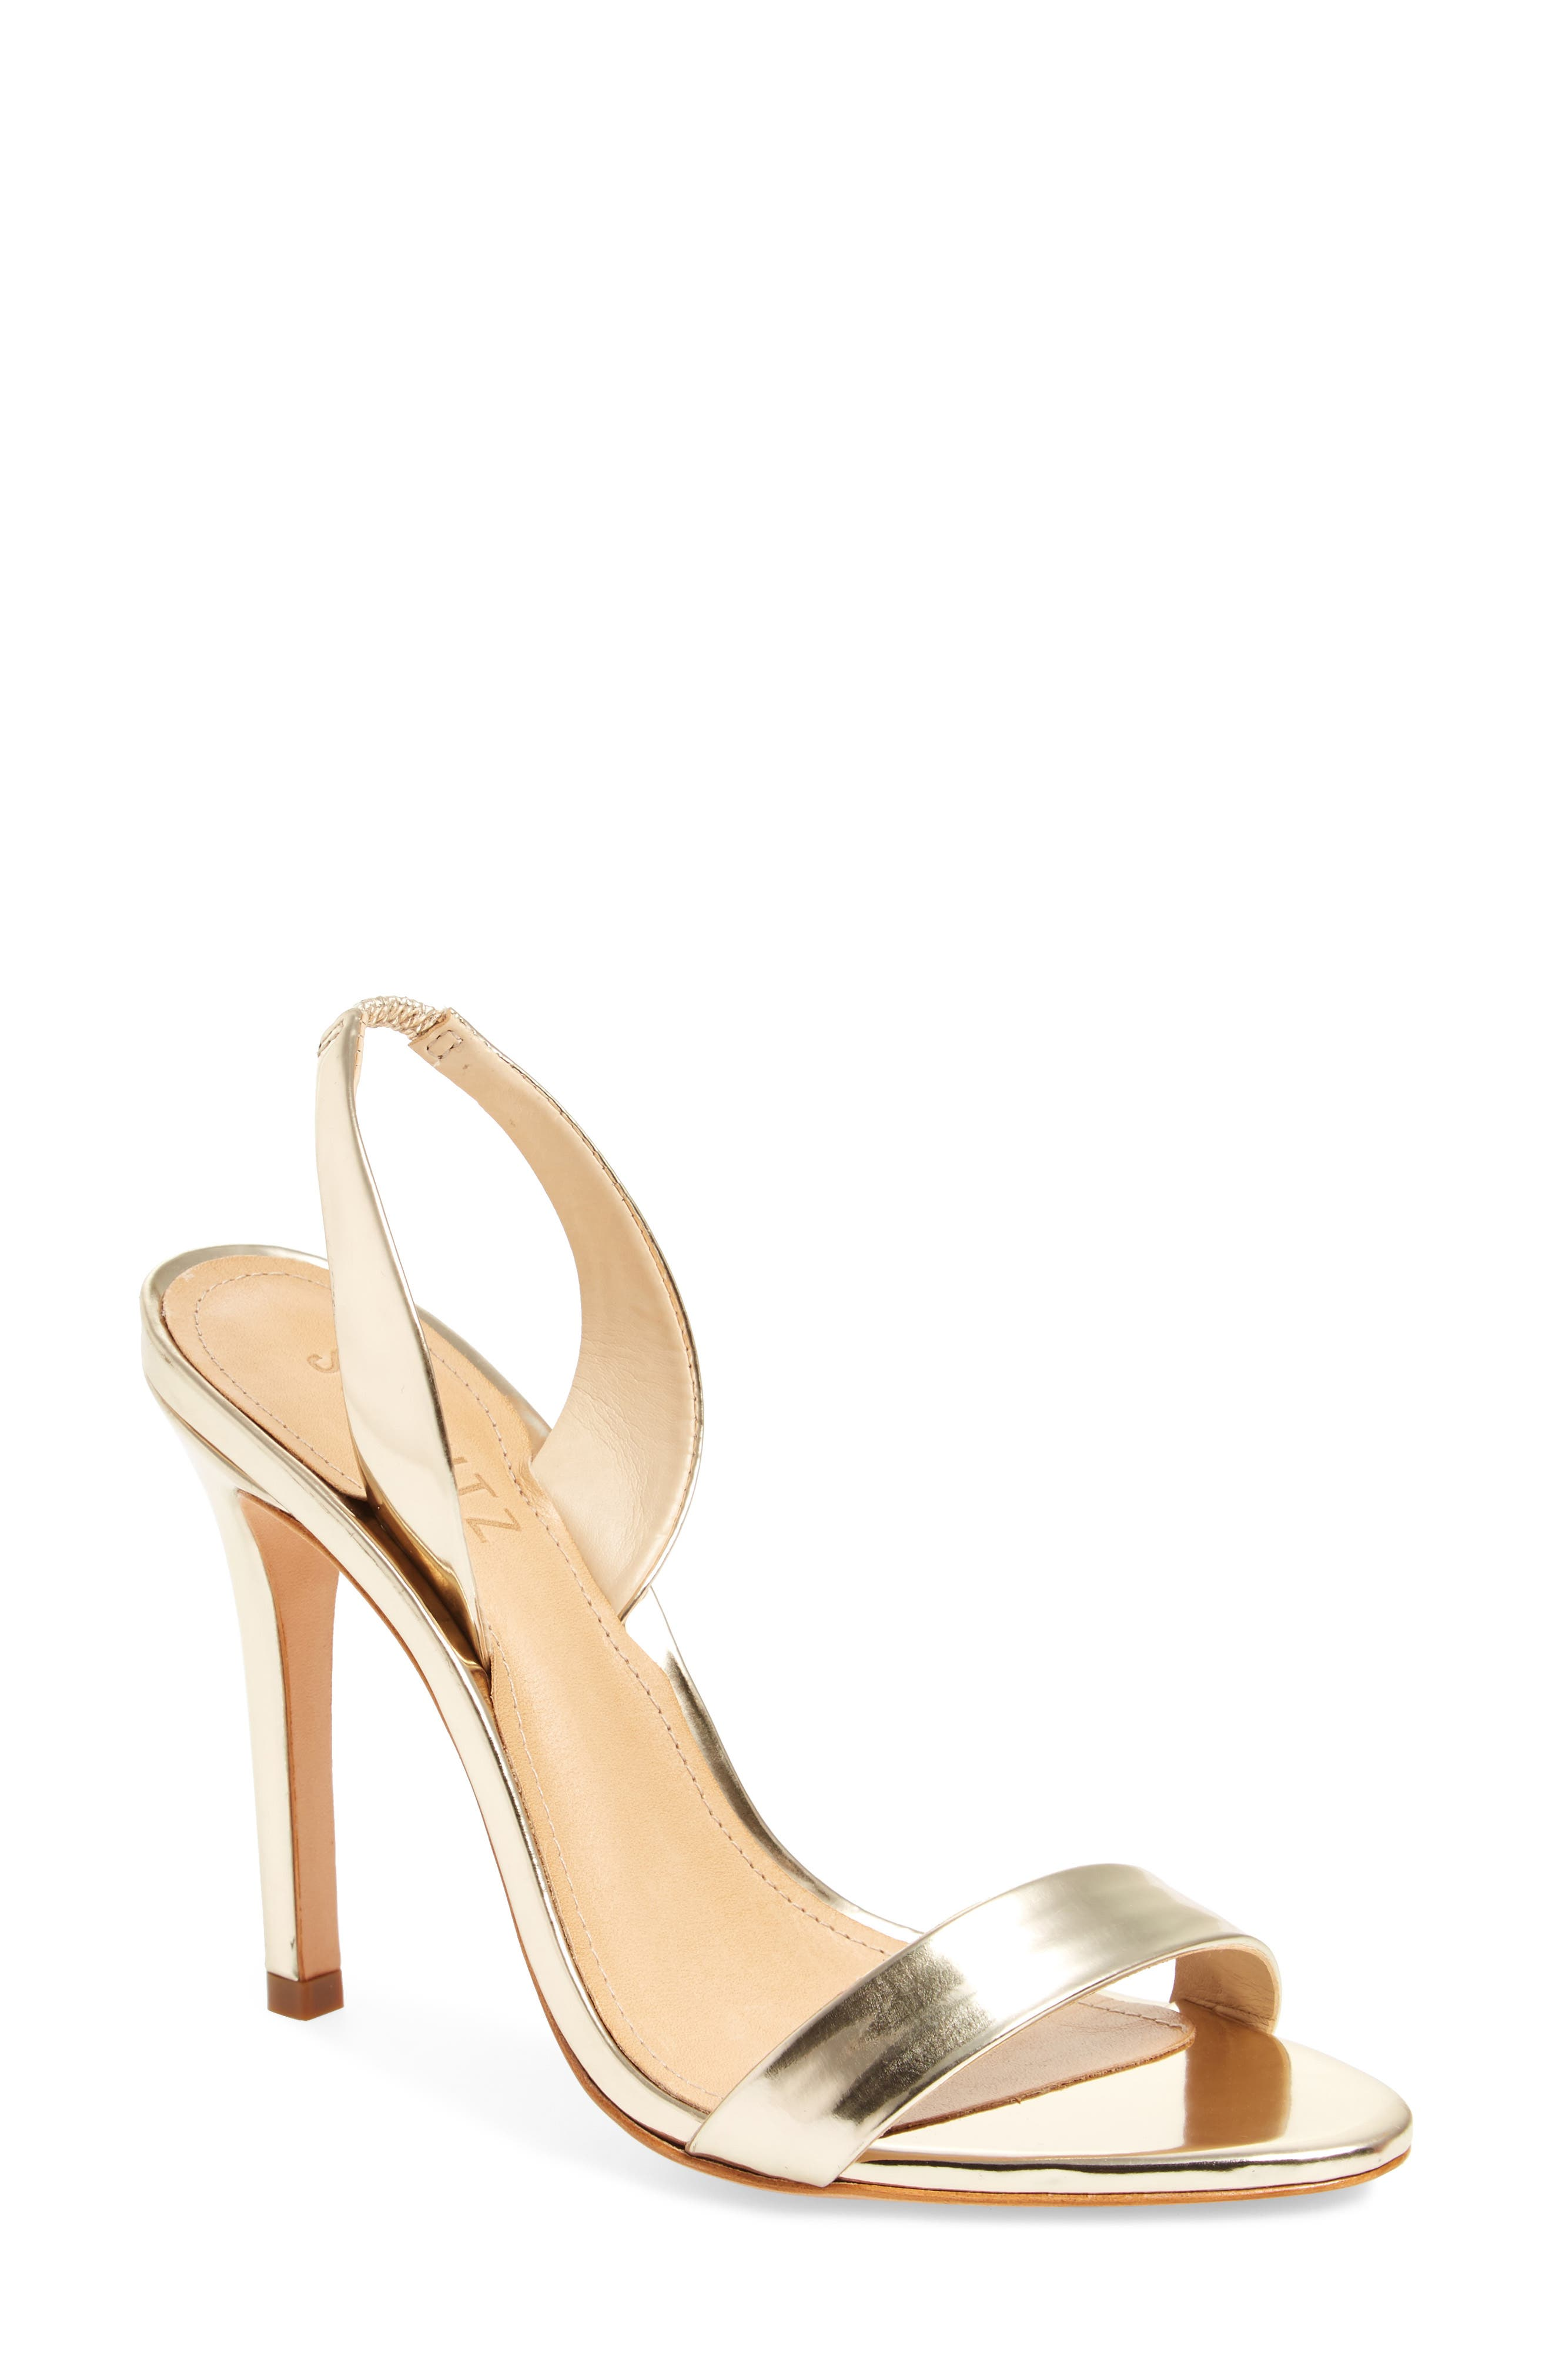 Alternate Image 1 Selected - Schutz Luriane Sandal (Women)